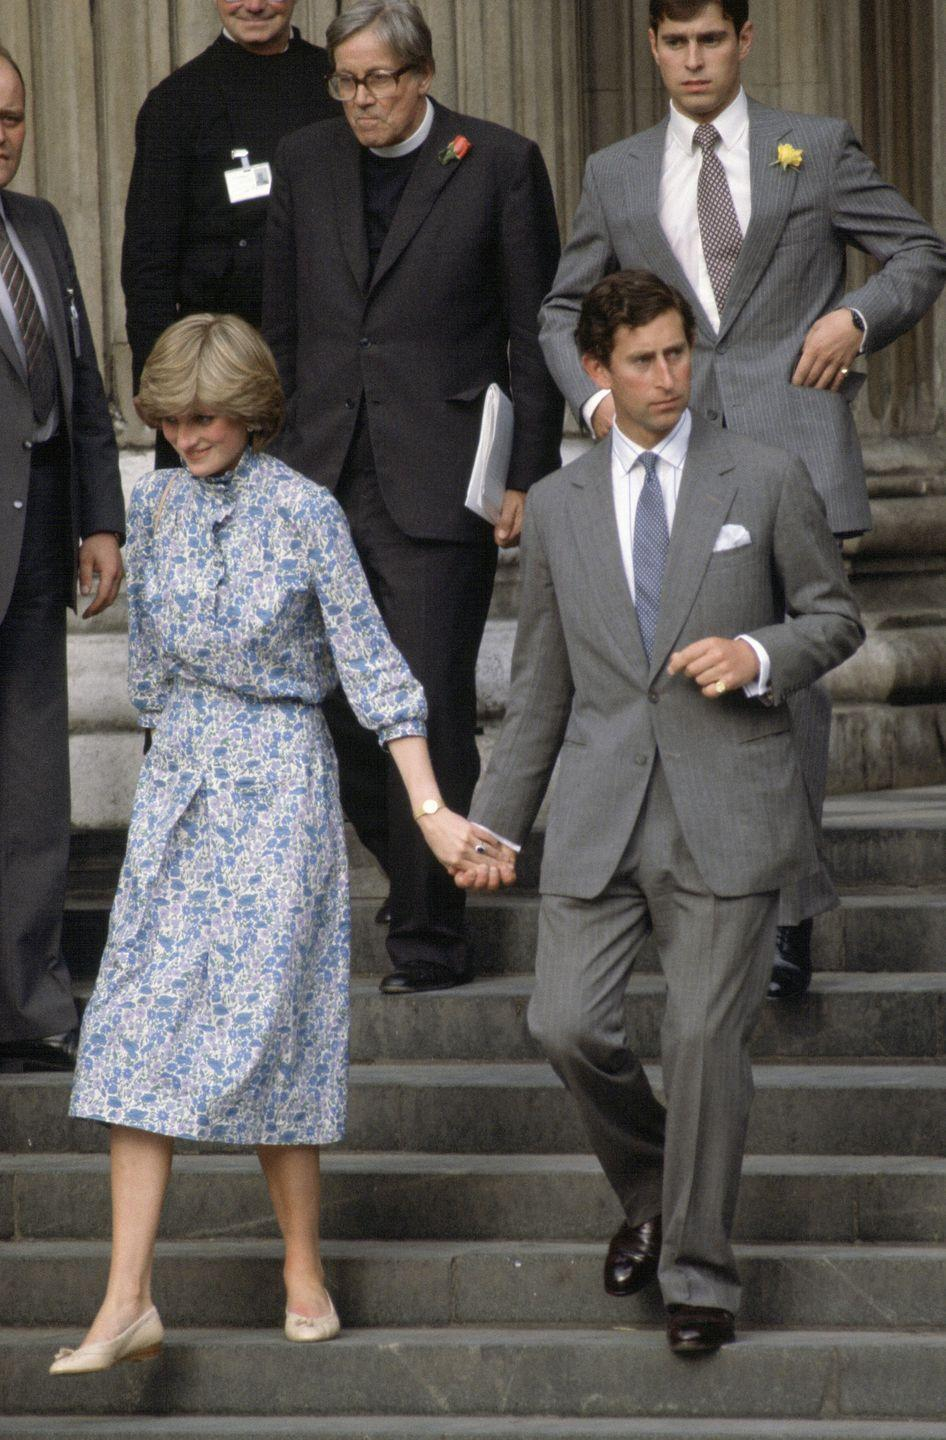 <p>The royal couple left the event hand-in-hand.</p>